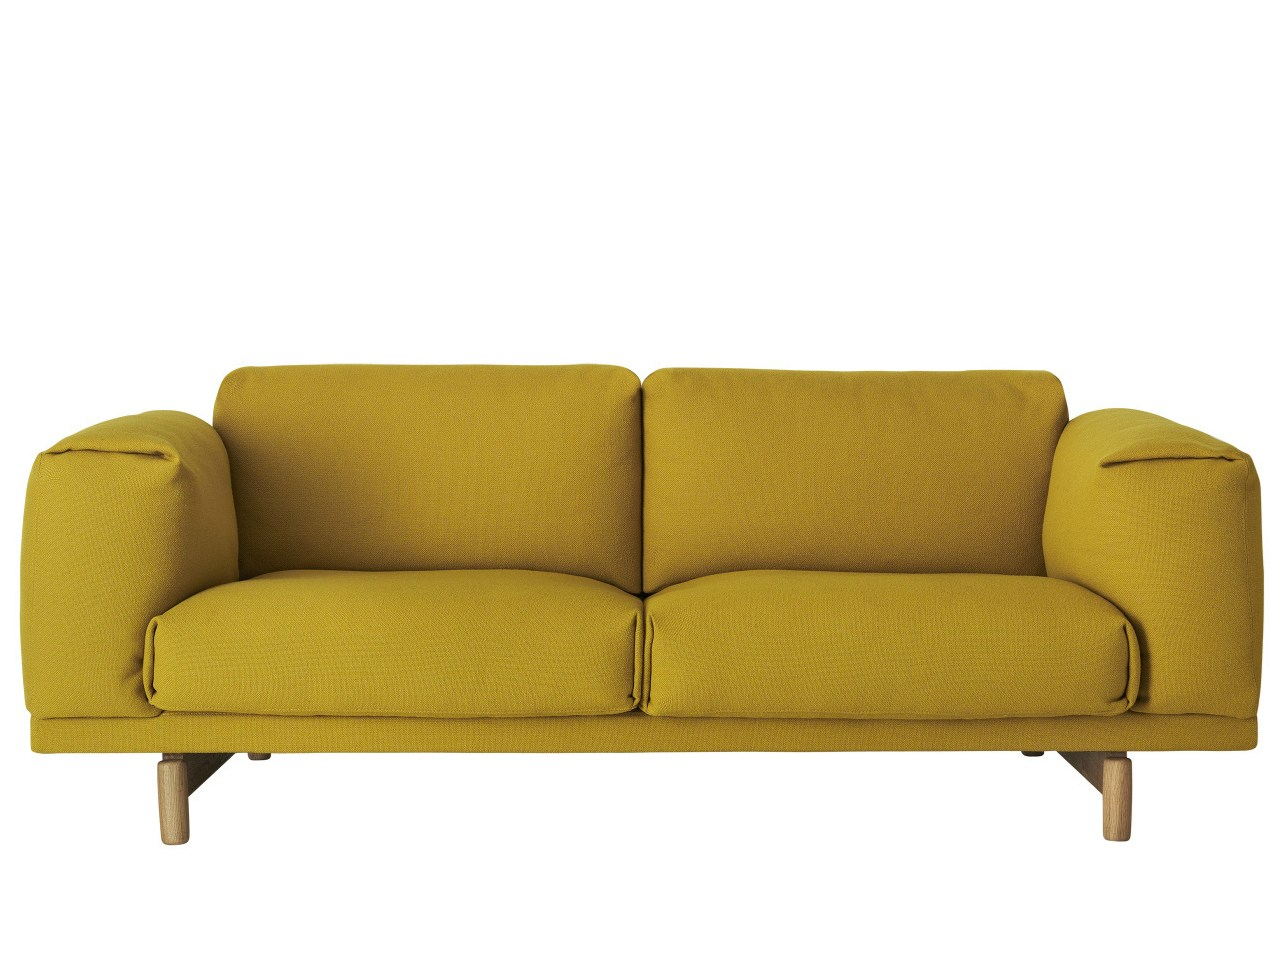 Elegant european style sofa bed simple sofa